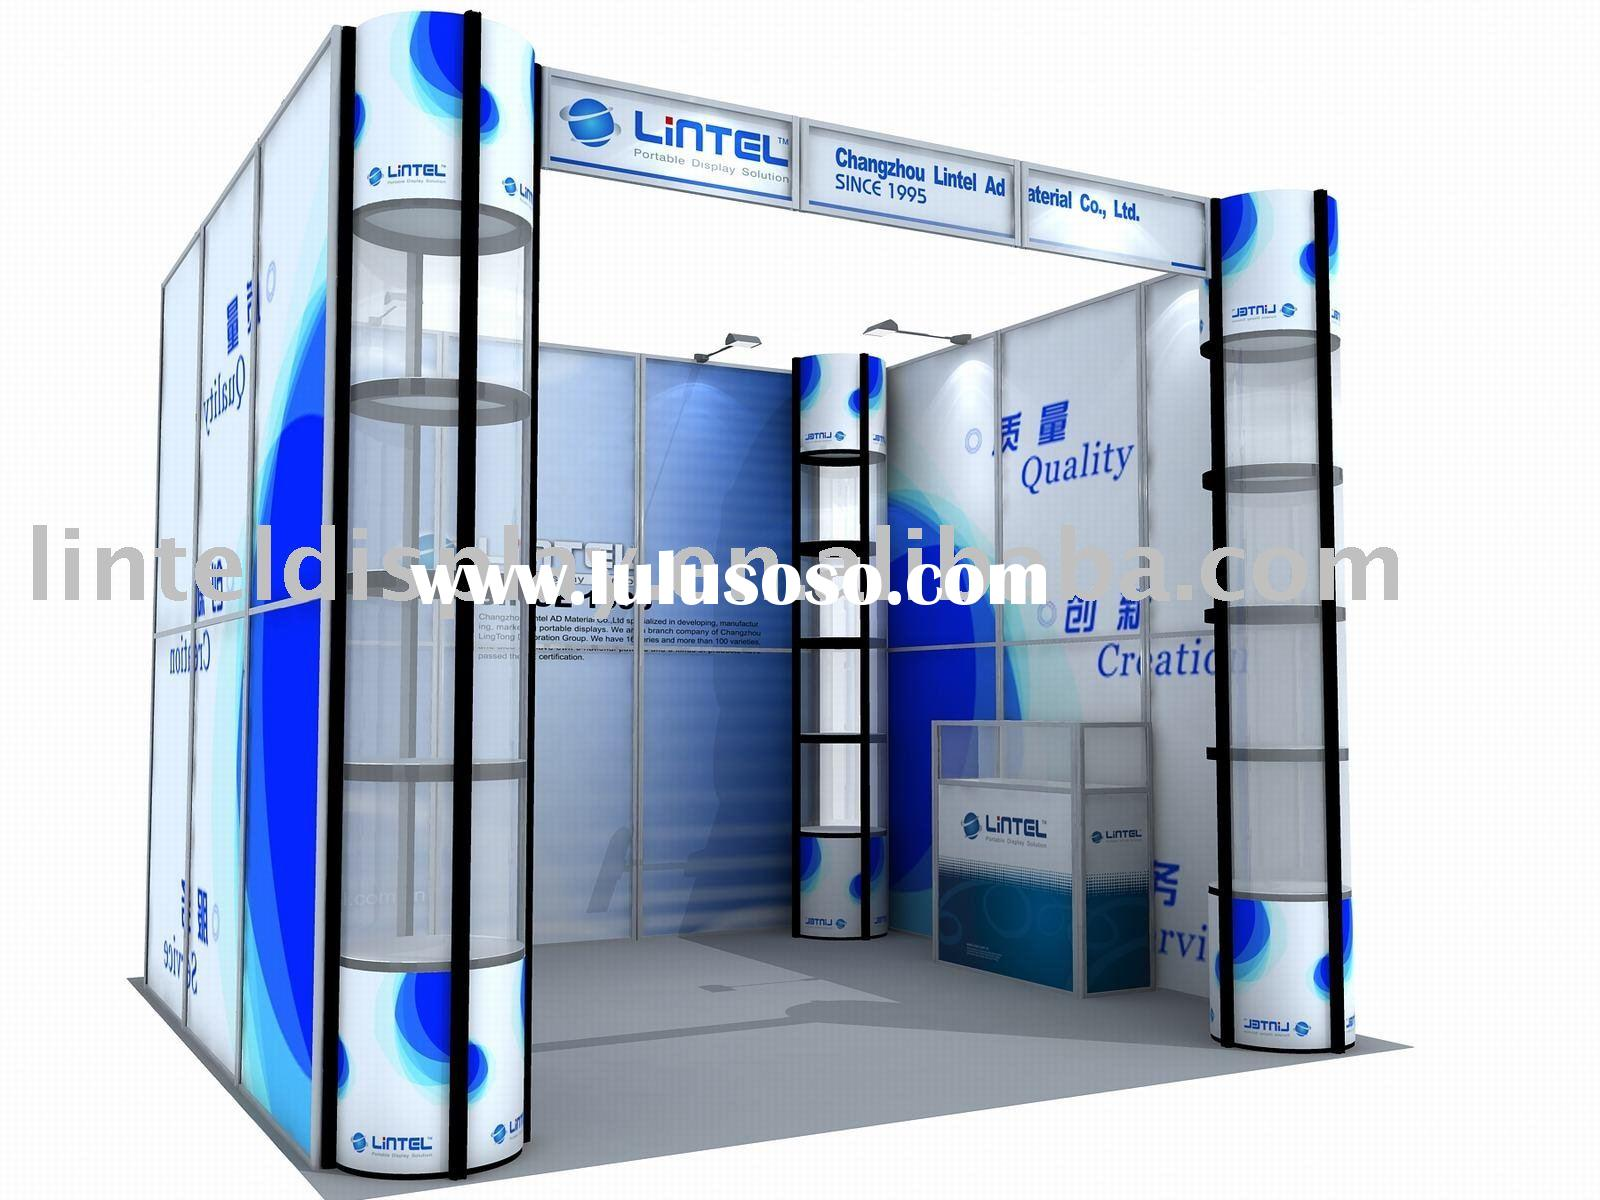 Exhibition Booth Outdoor : Exhibition construction